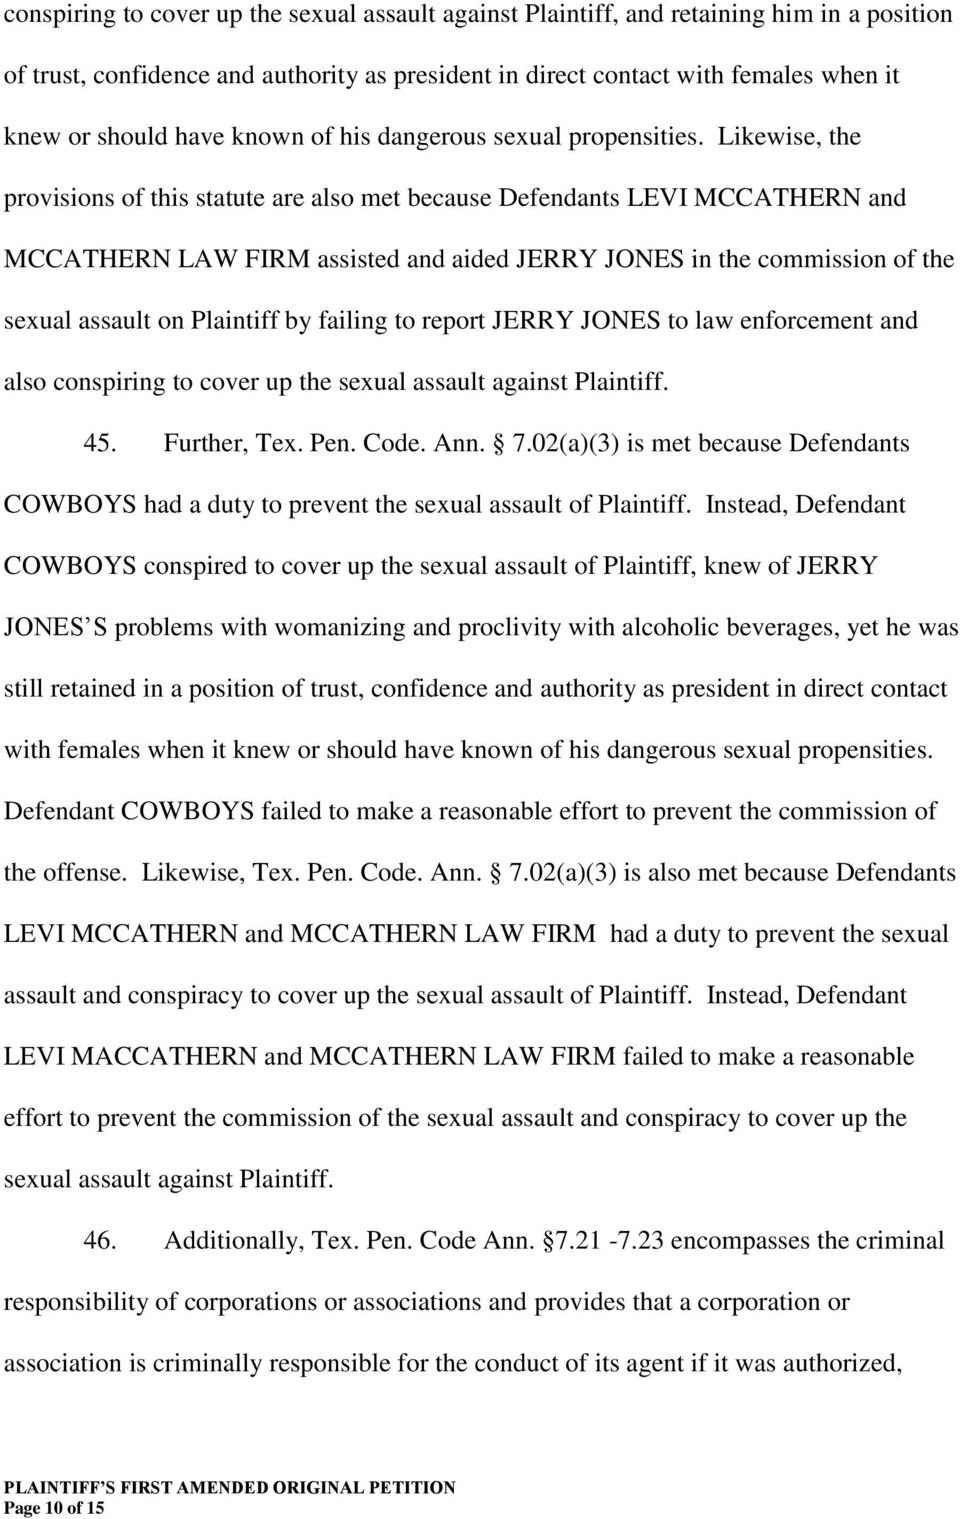 Likewise, the provisions of this statute are also met because Defendants LEVI MCCATHERN and MCCATHERN LAW FIRM assisted and aided JERRY JONES in the commission of the sexual assault on Plaintiff by